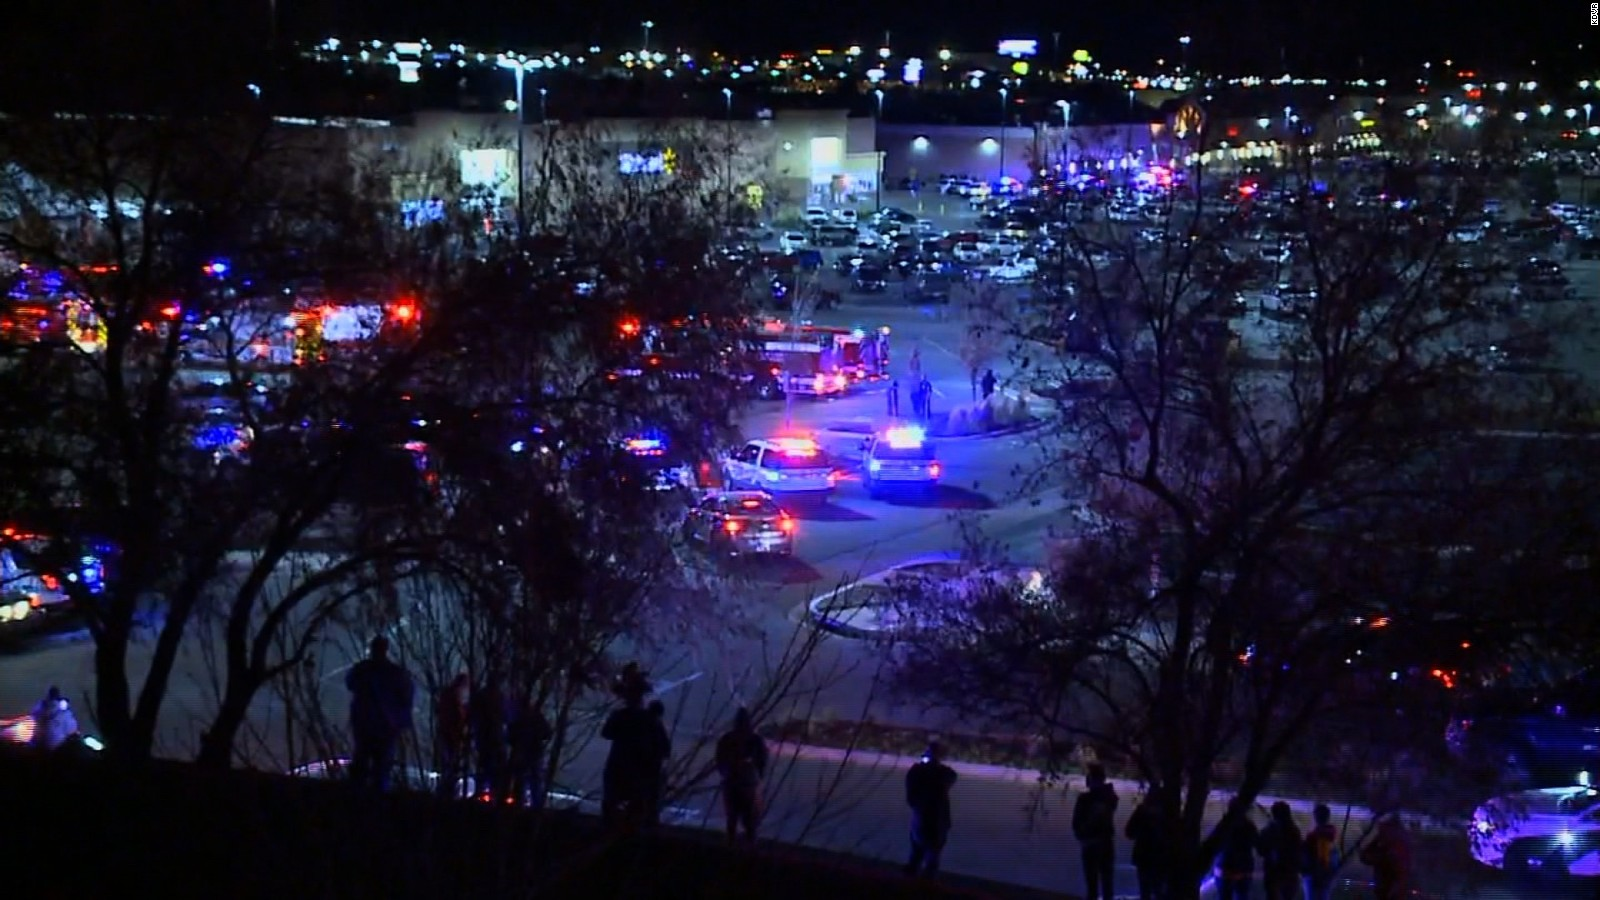 3 dead in shooting at Walmart in Colorado